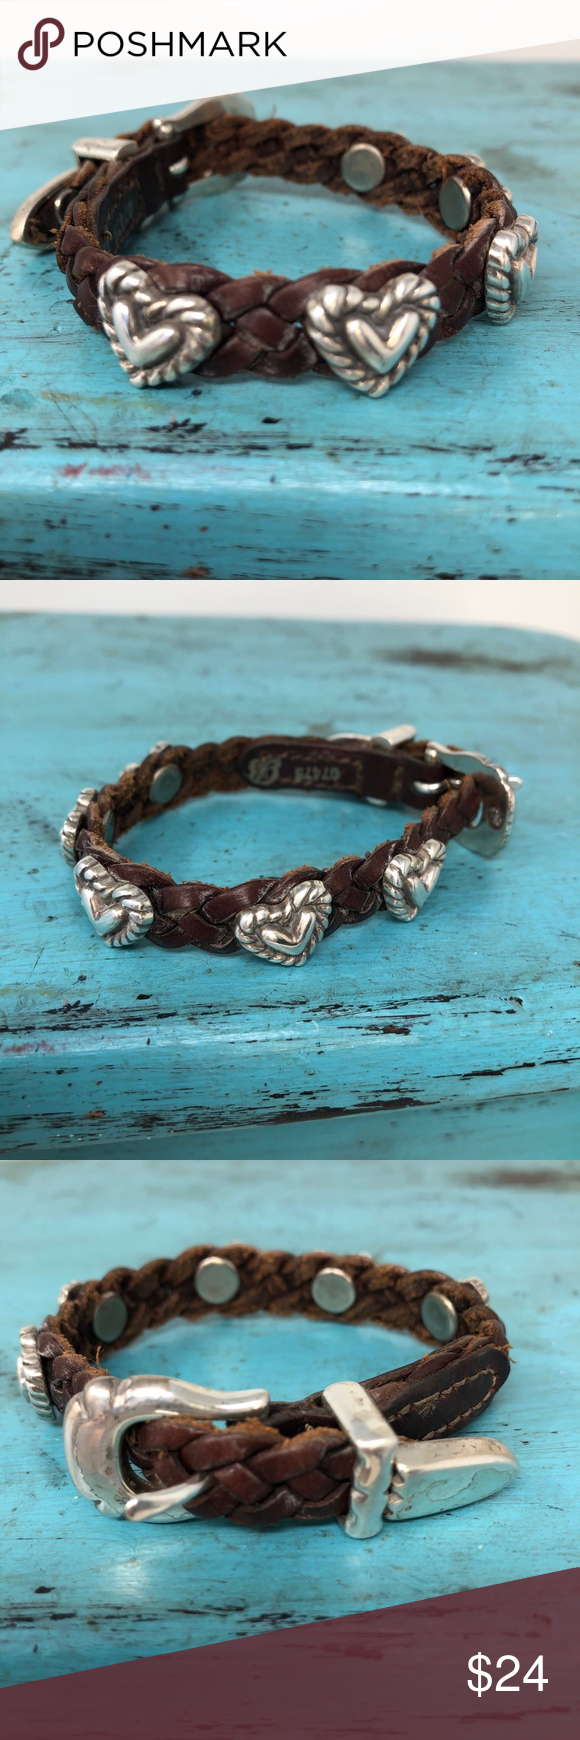 Brighton Roped Heart Braided Leather Bracelet Brighton Jewelry Roped Heart Bracelet 07475 Braided L Braided Leather Bracelet Leather Bracelet Braided Leather